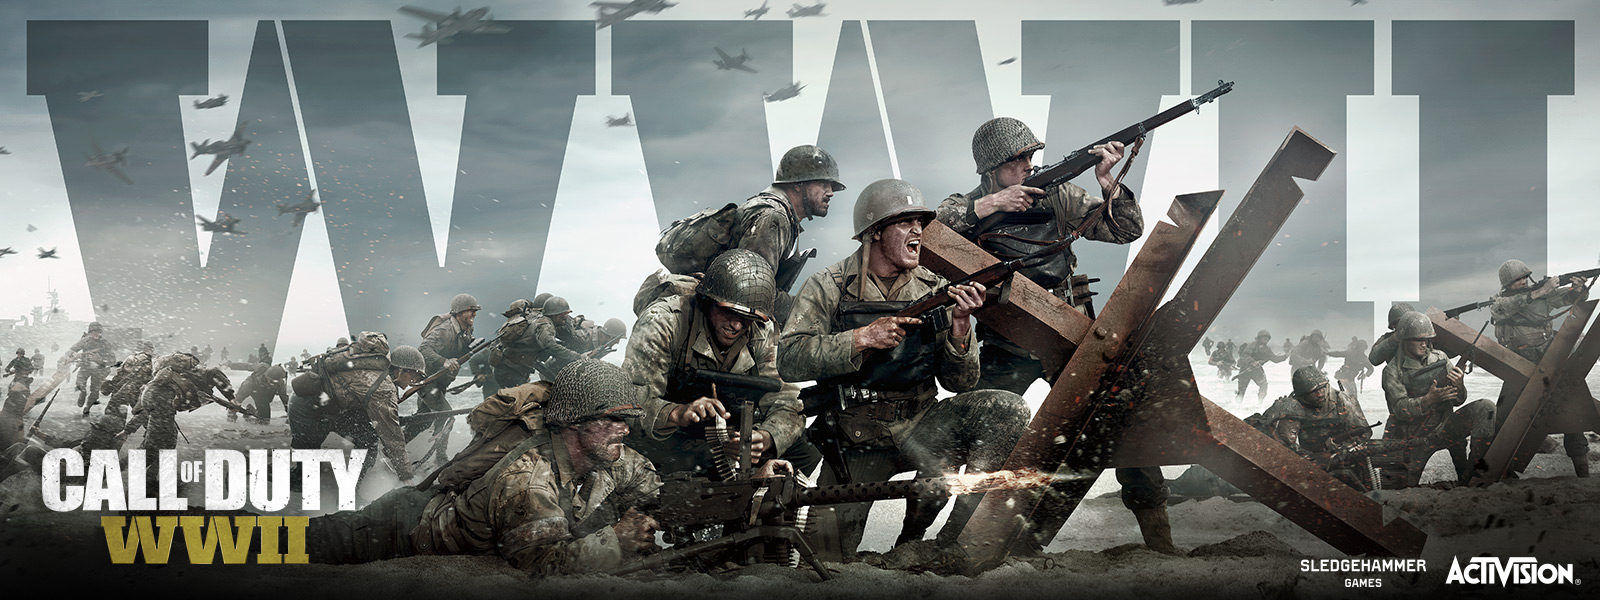 Call of Duty WWII Digital Deluxe Edition